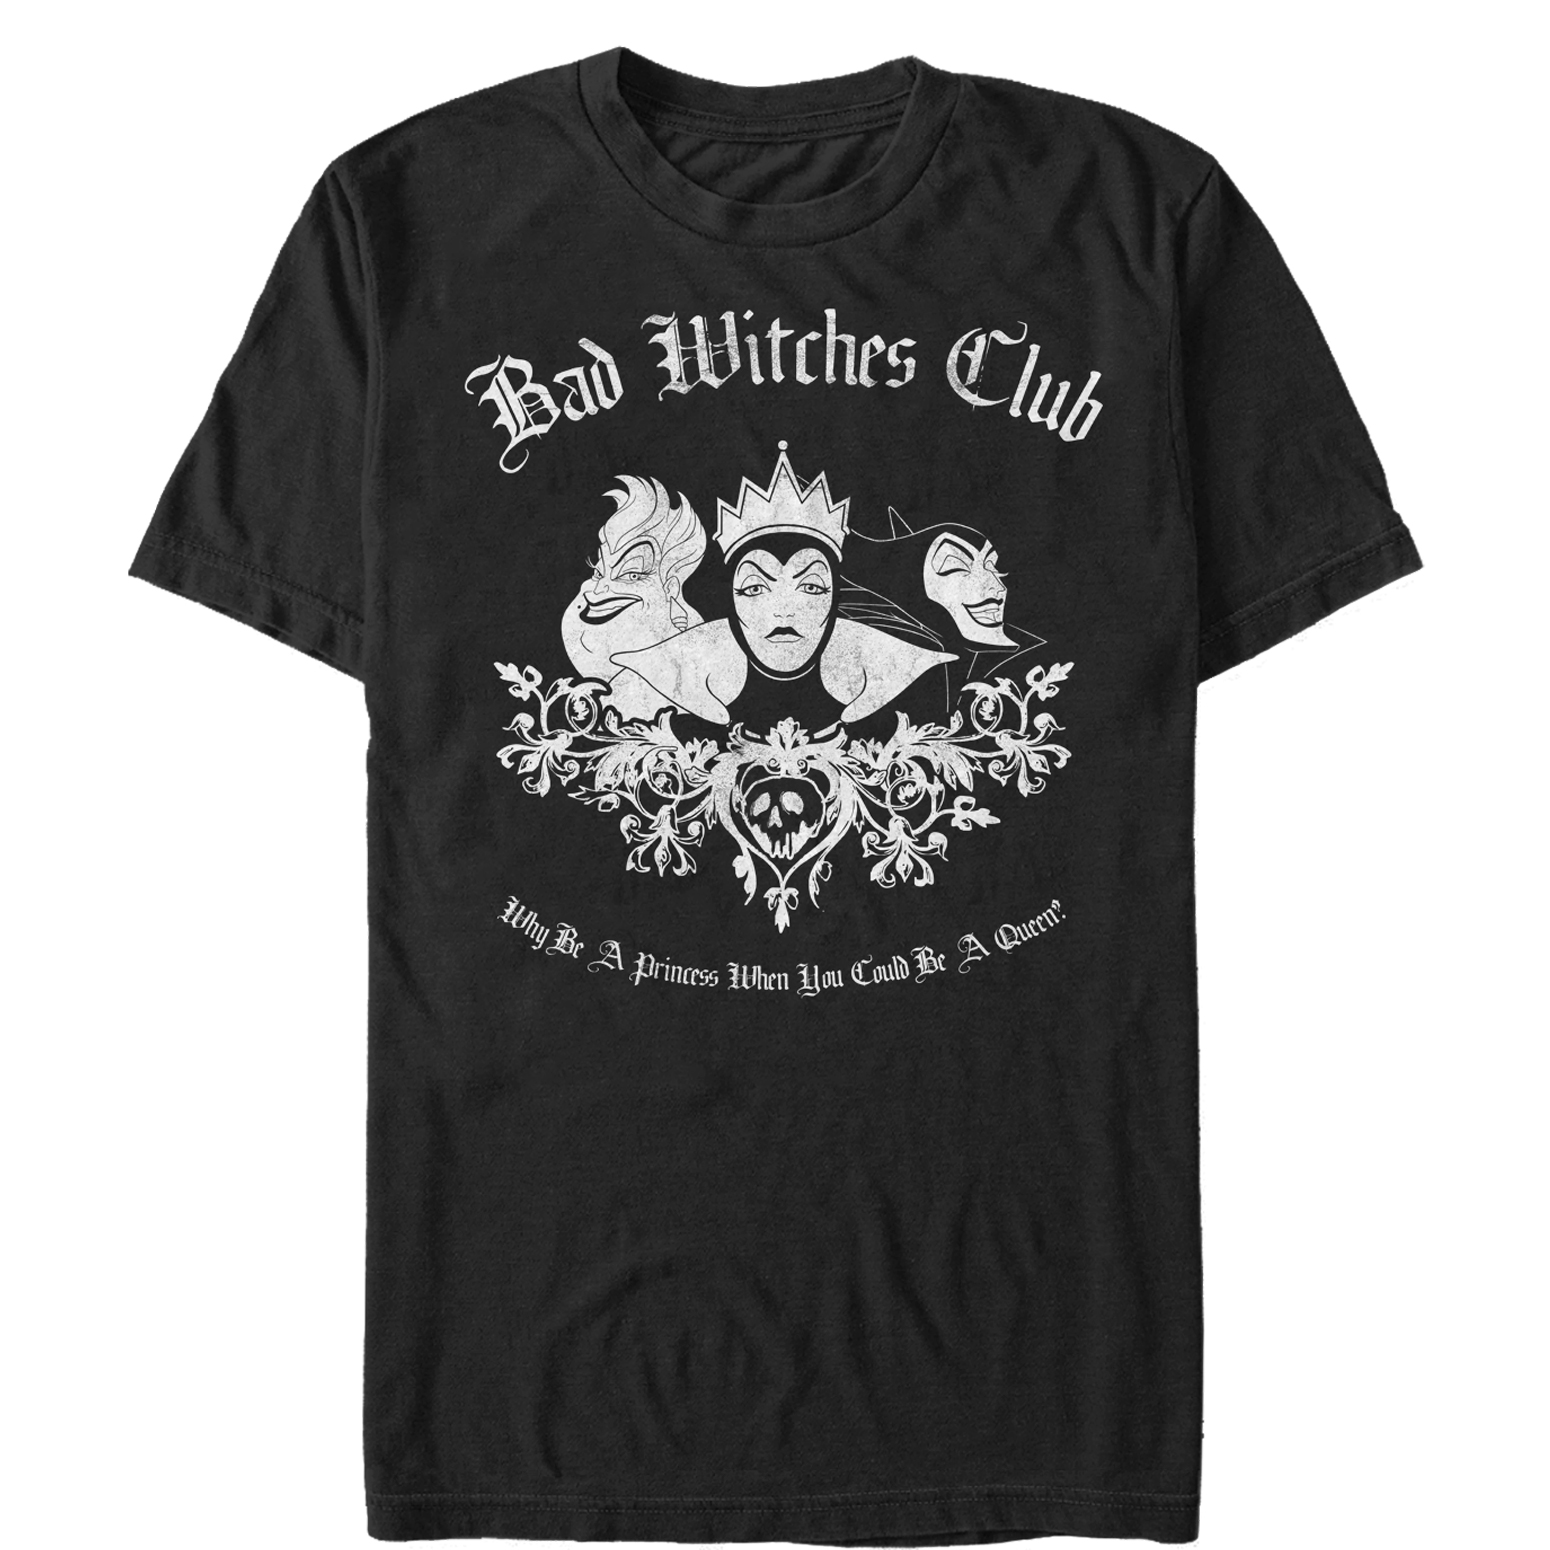 Disney Princess Men's Bad Witches Club T-Shirt